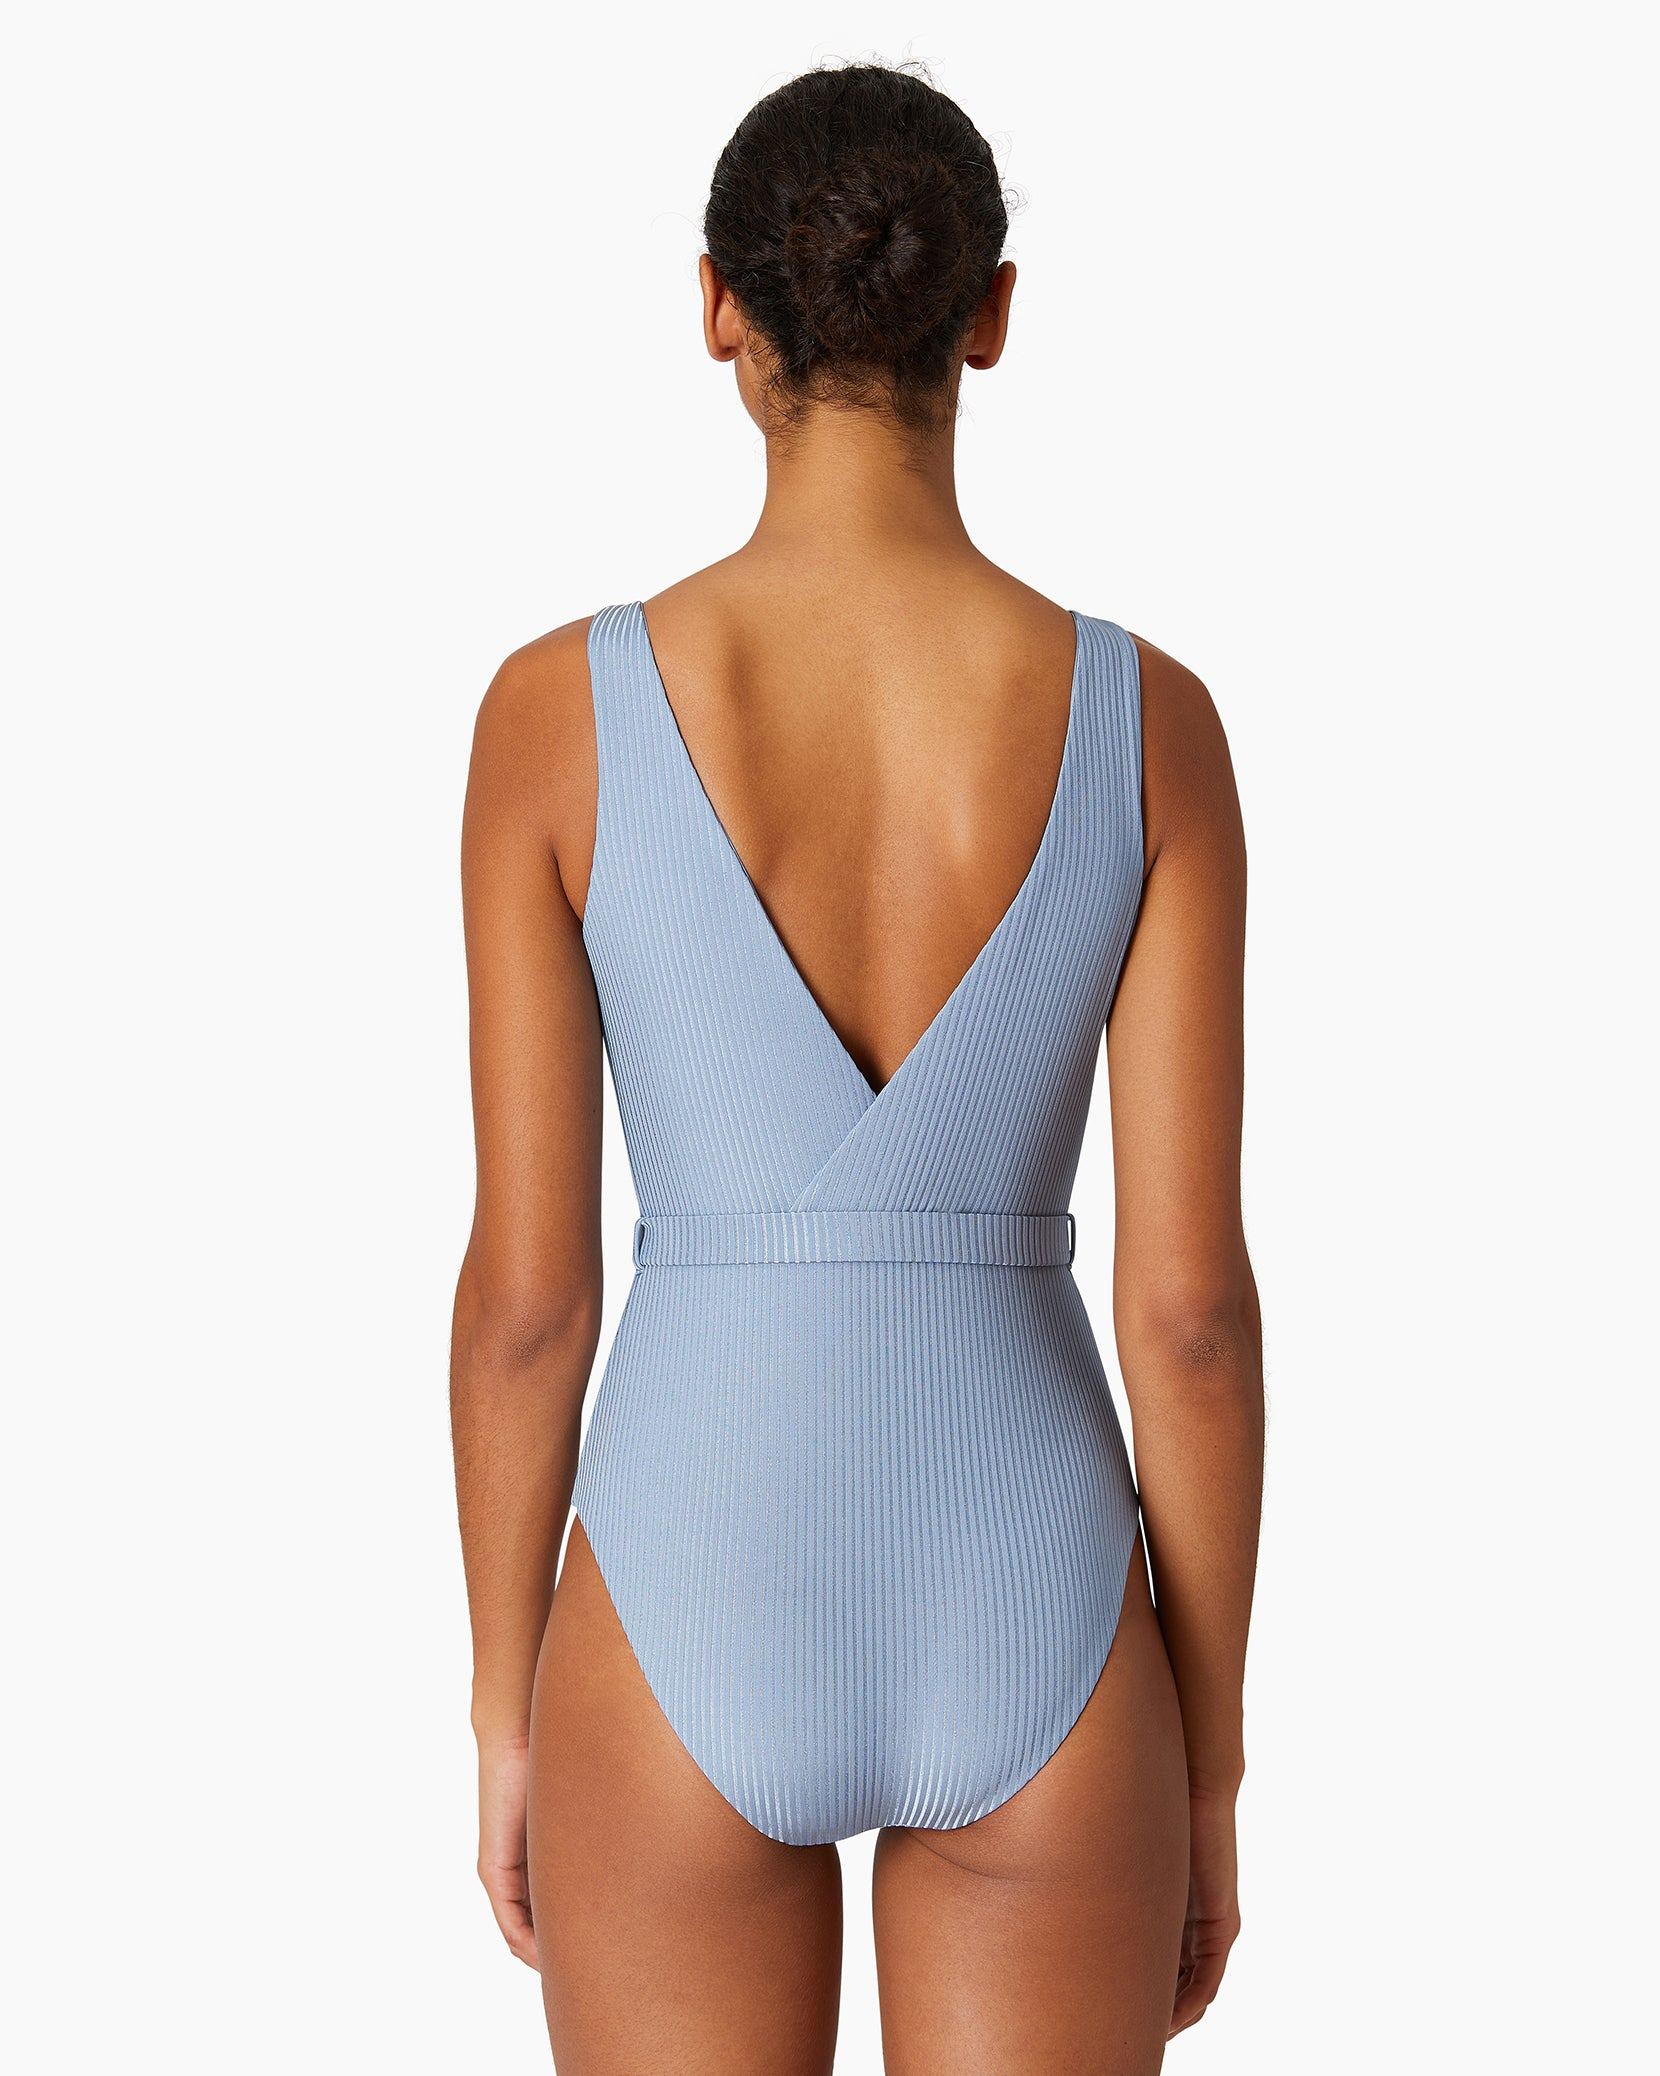 Shimmer Rib Michelle One Piece in Captain Blue - 3 - Onia